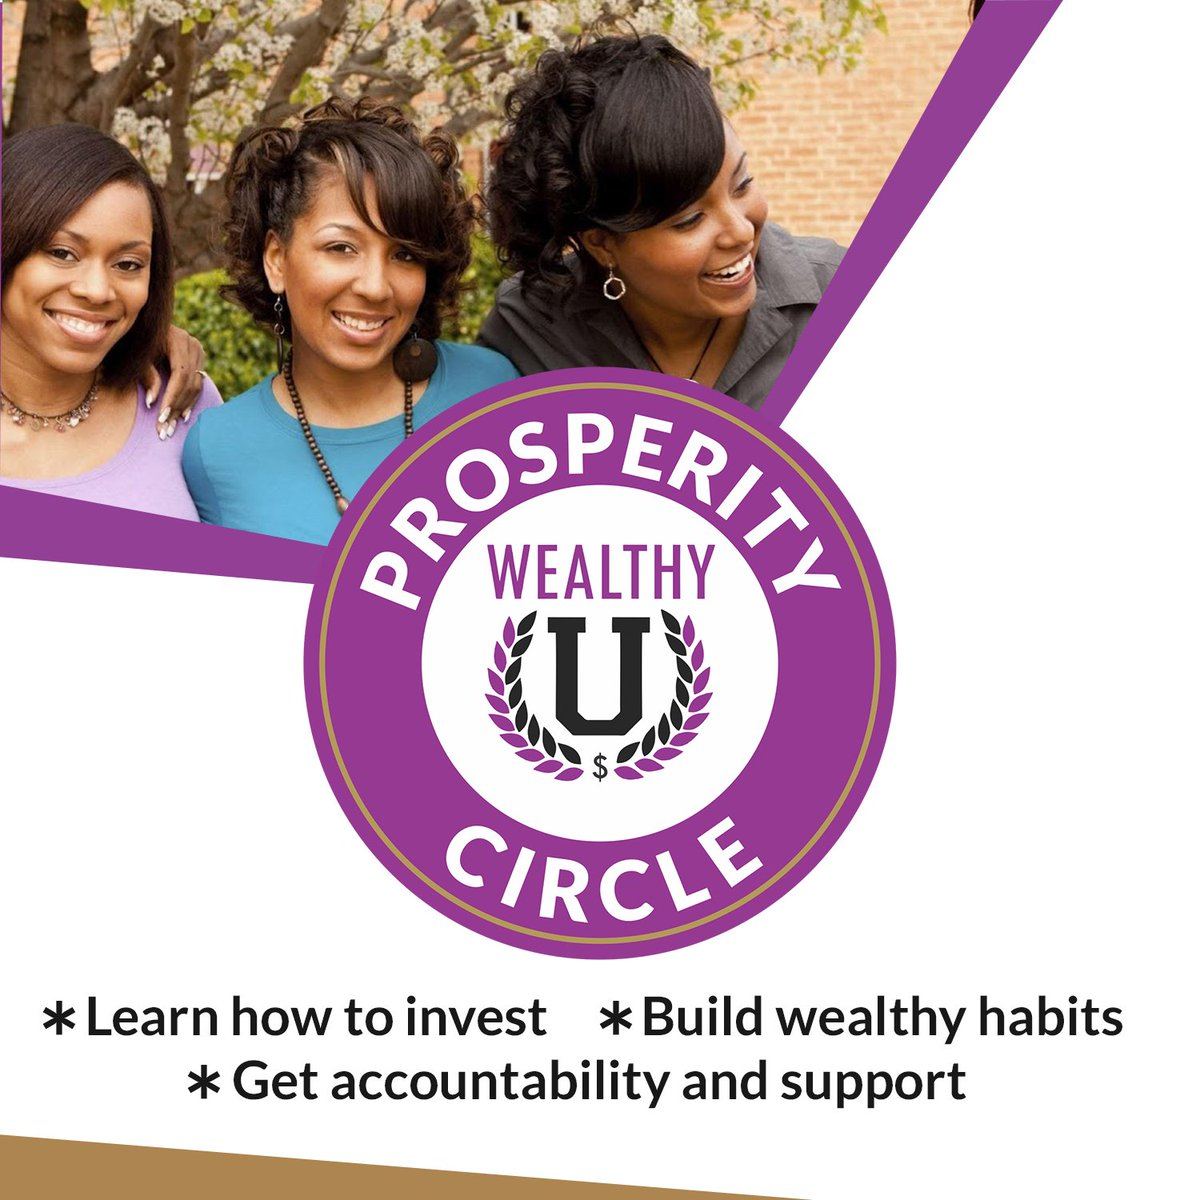 Woo! Hoo! 50 Slots of the 200 are gone! The WealthyU Prosperity Circle membership site cost $1 to join:-)That's right - $1 dollar to join! Are you finally ready to overcome your financial fears, learn how to invest and build wealth? >>>http://bit.ly/wealthyuprosperity…